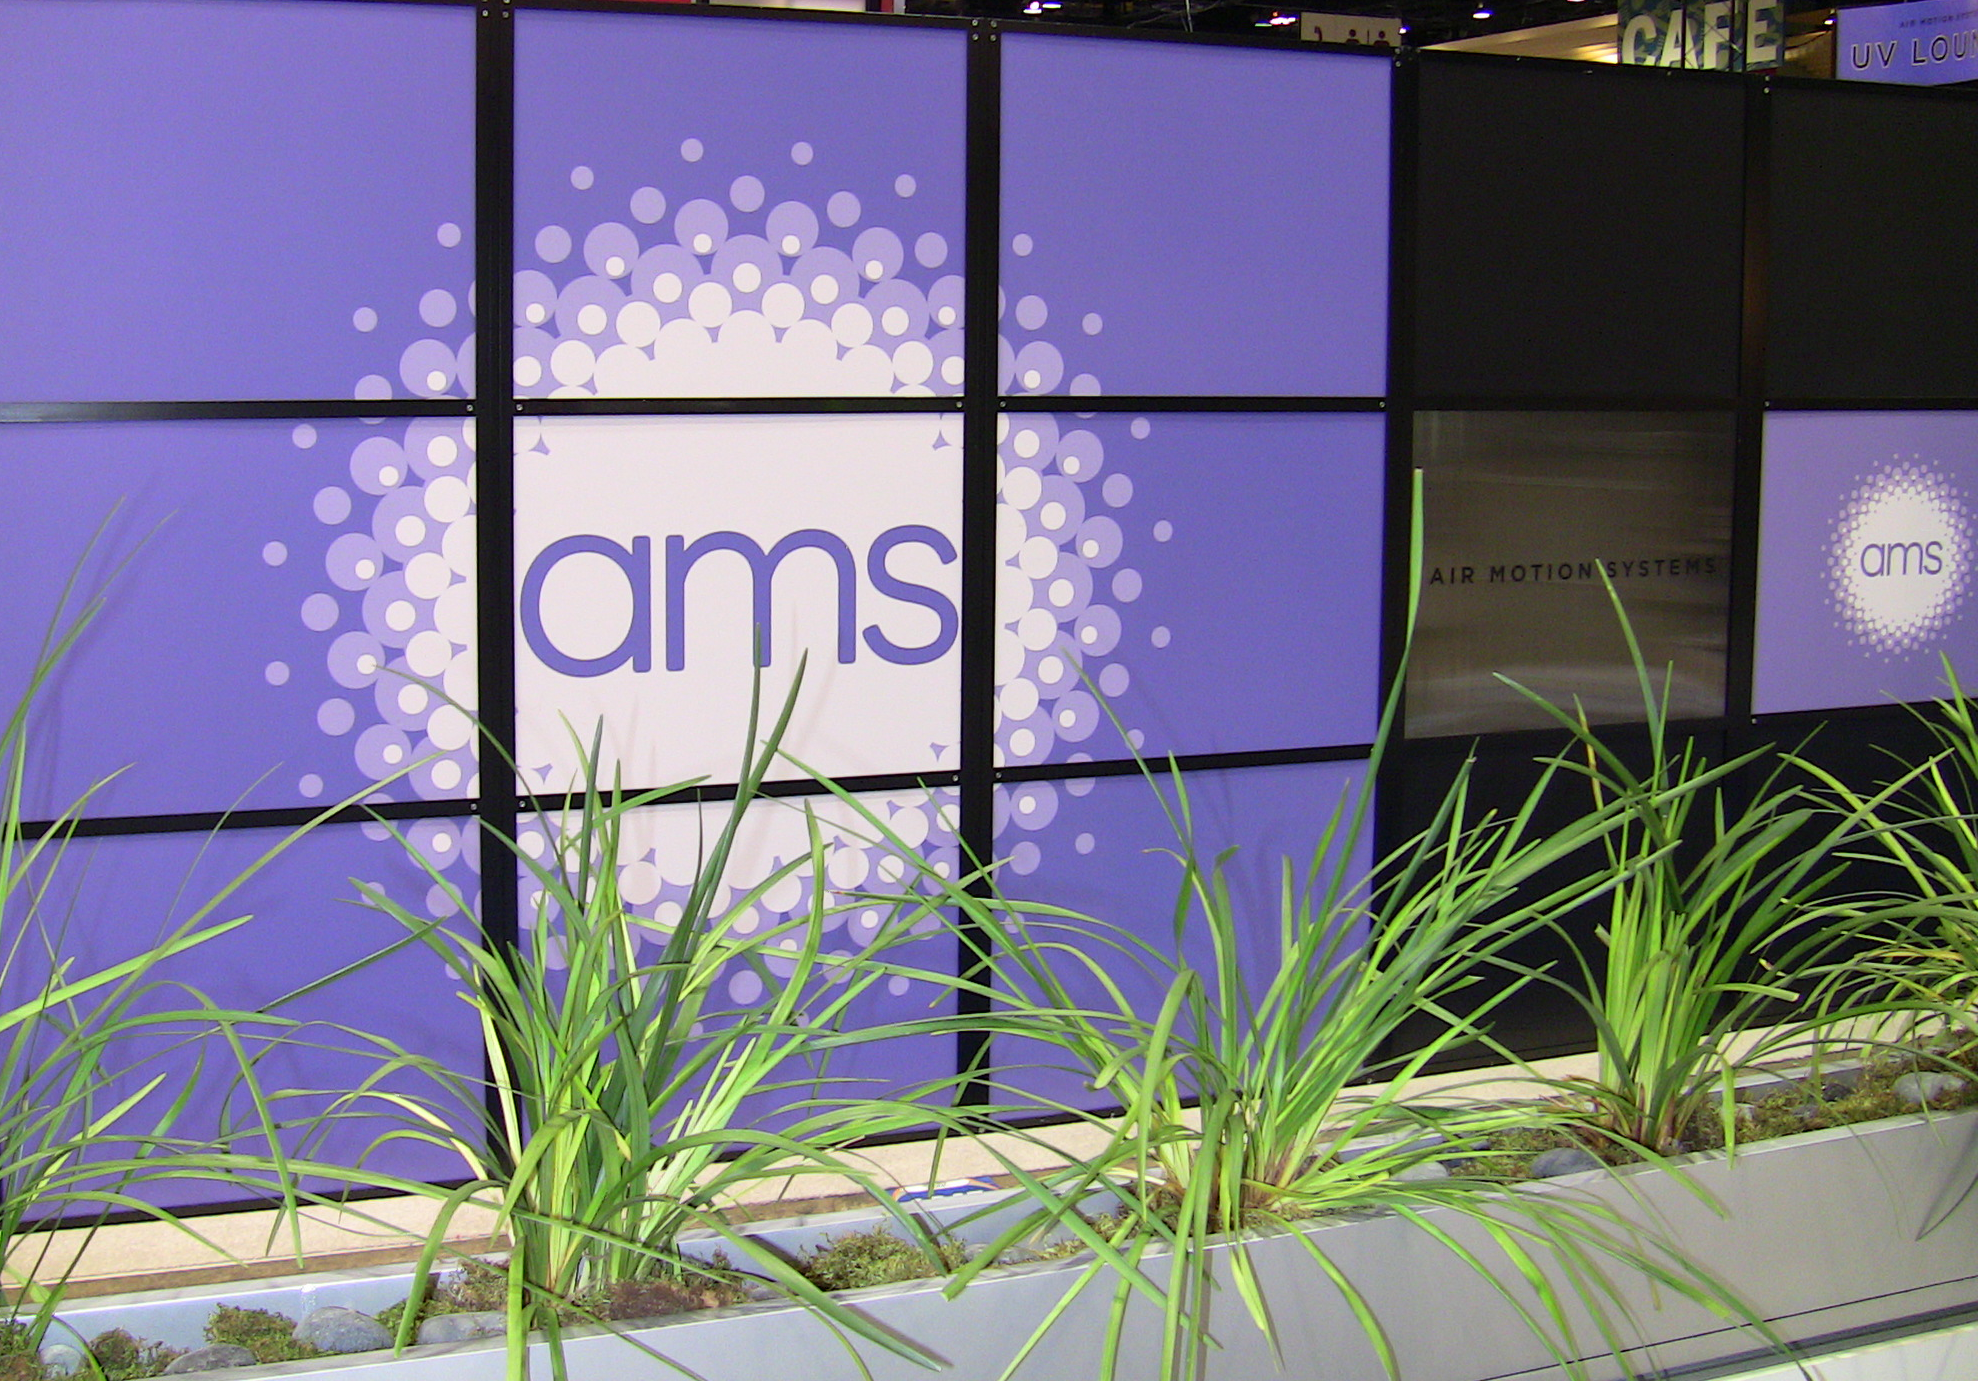 AMS UV Lounge exhibit at the PRINT show in Chicago